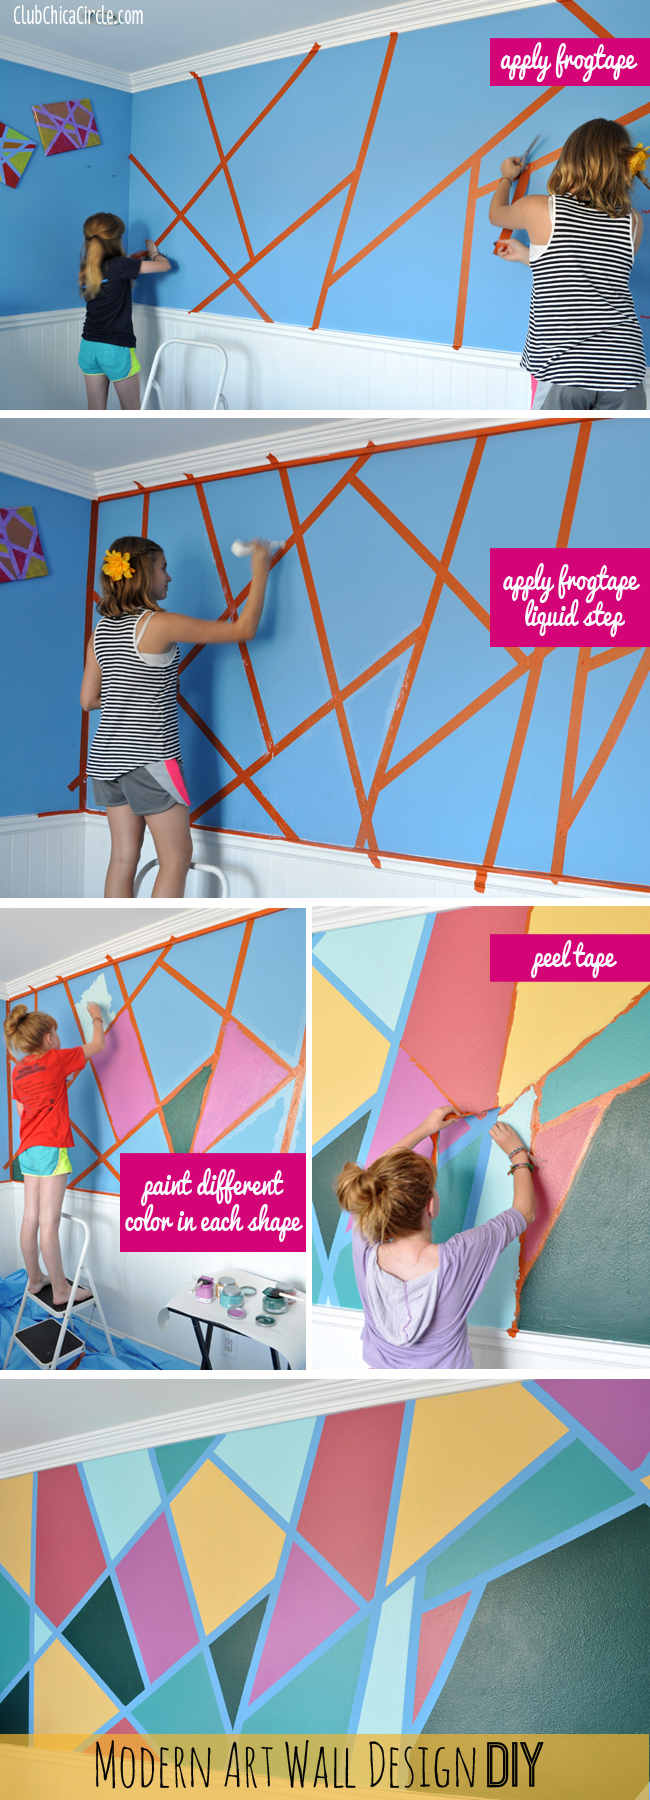 Modern Art Wall Design Diy : Modern art wall design diy for the coolest ever